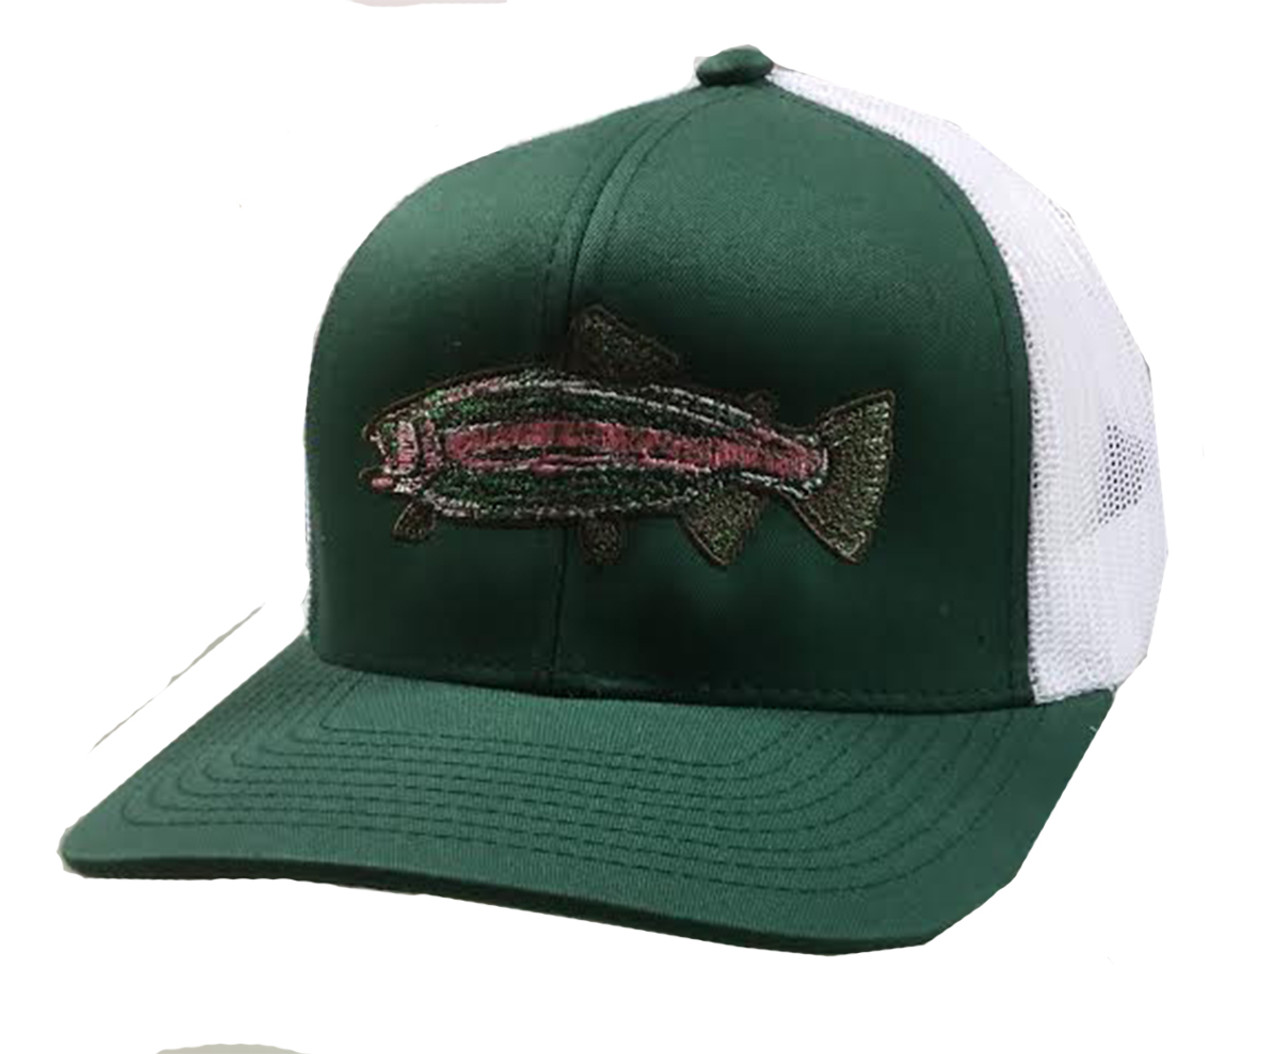 c86d2c563b3d0 Southern Country Clothing Rainbow Trout Hat - Trenz Shirt Company